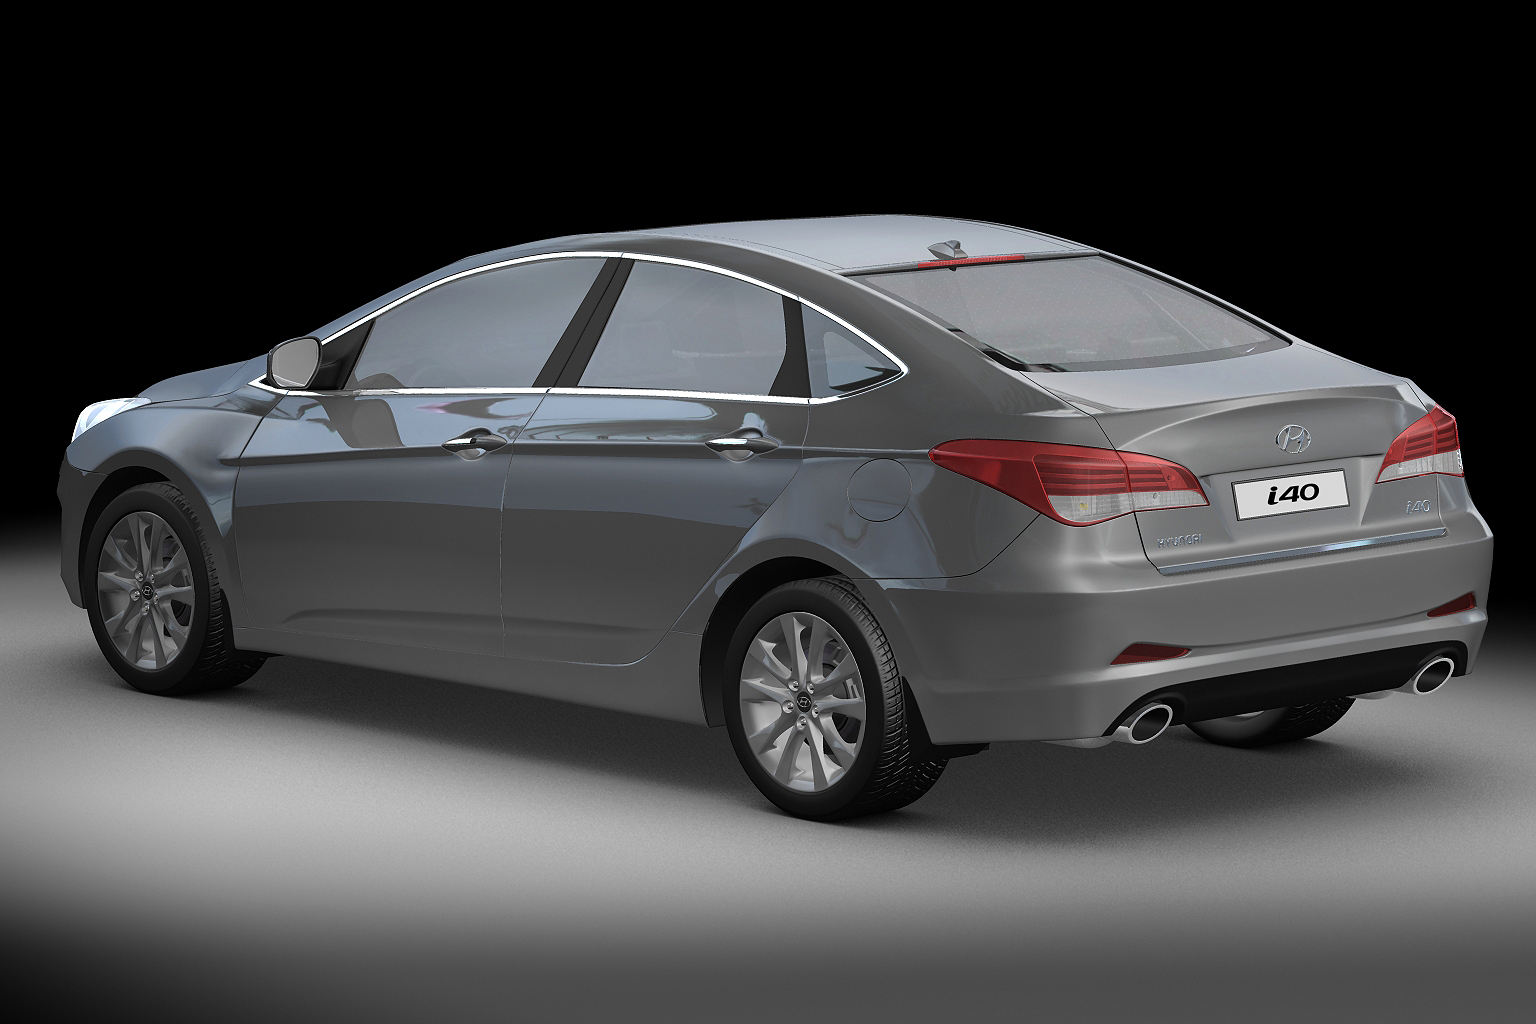 2012 hyundai i40 sedan 3d model max obj 3ds fbx c4d lwo lw lws. Black Bedroom Furniture Sets. Home Design Ideas